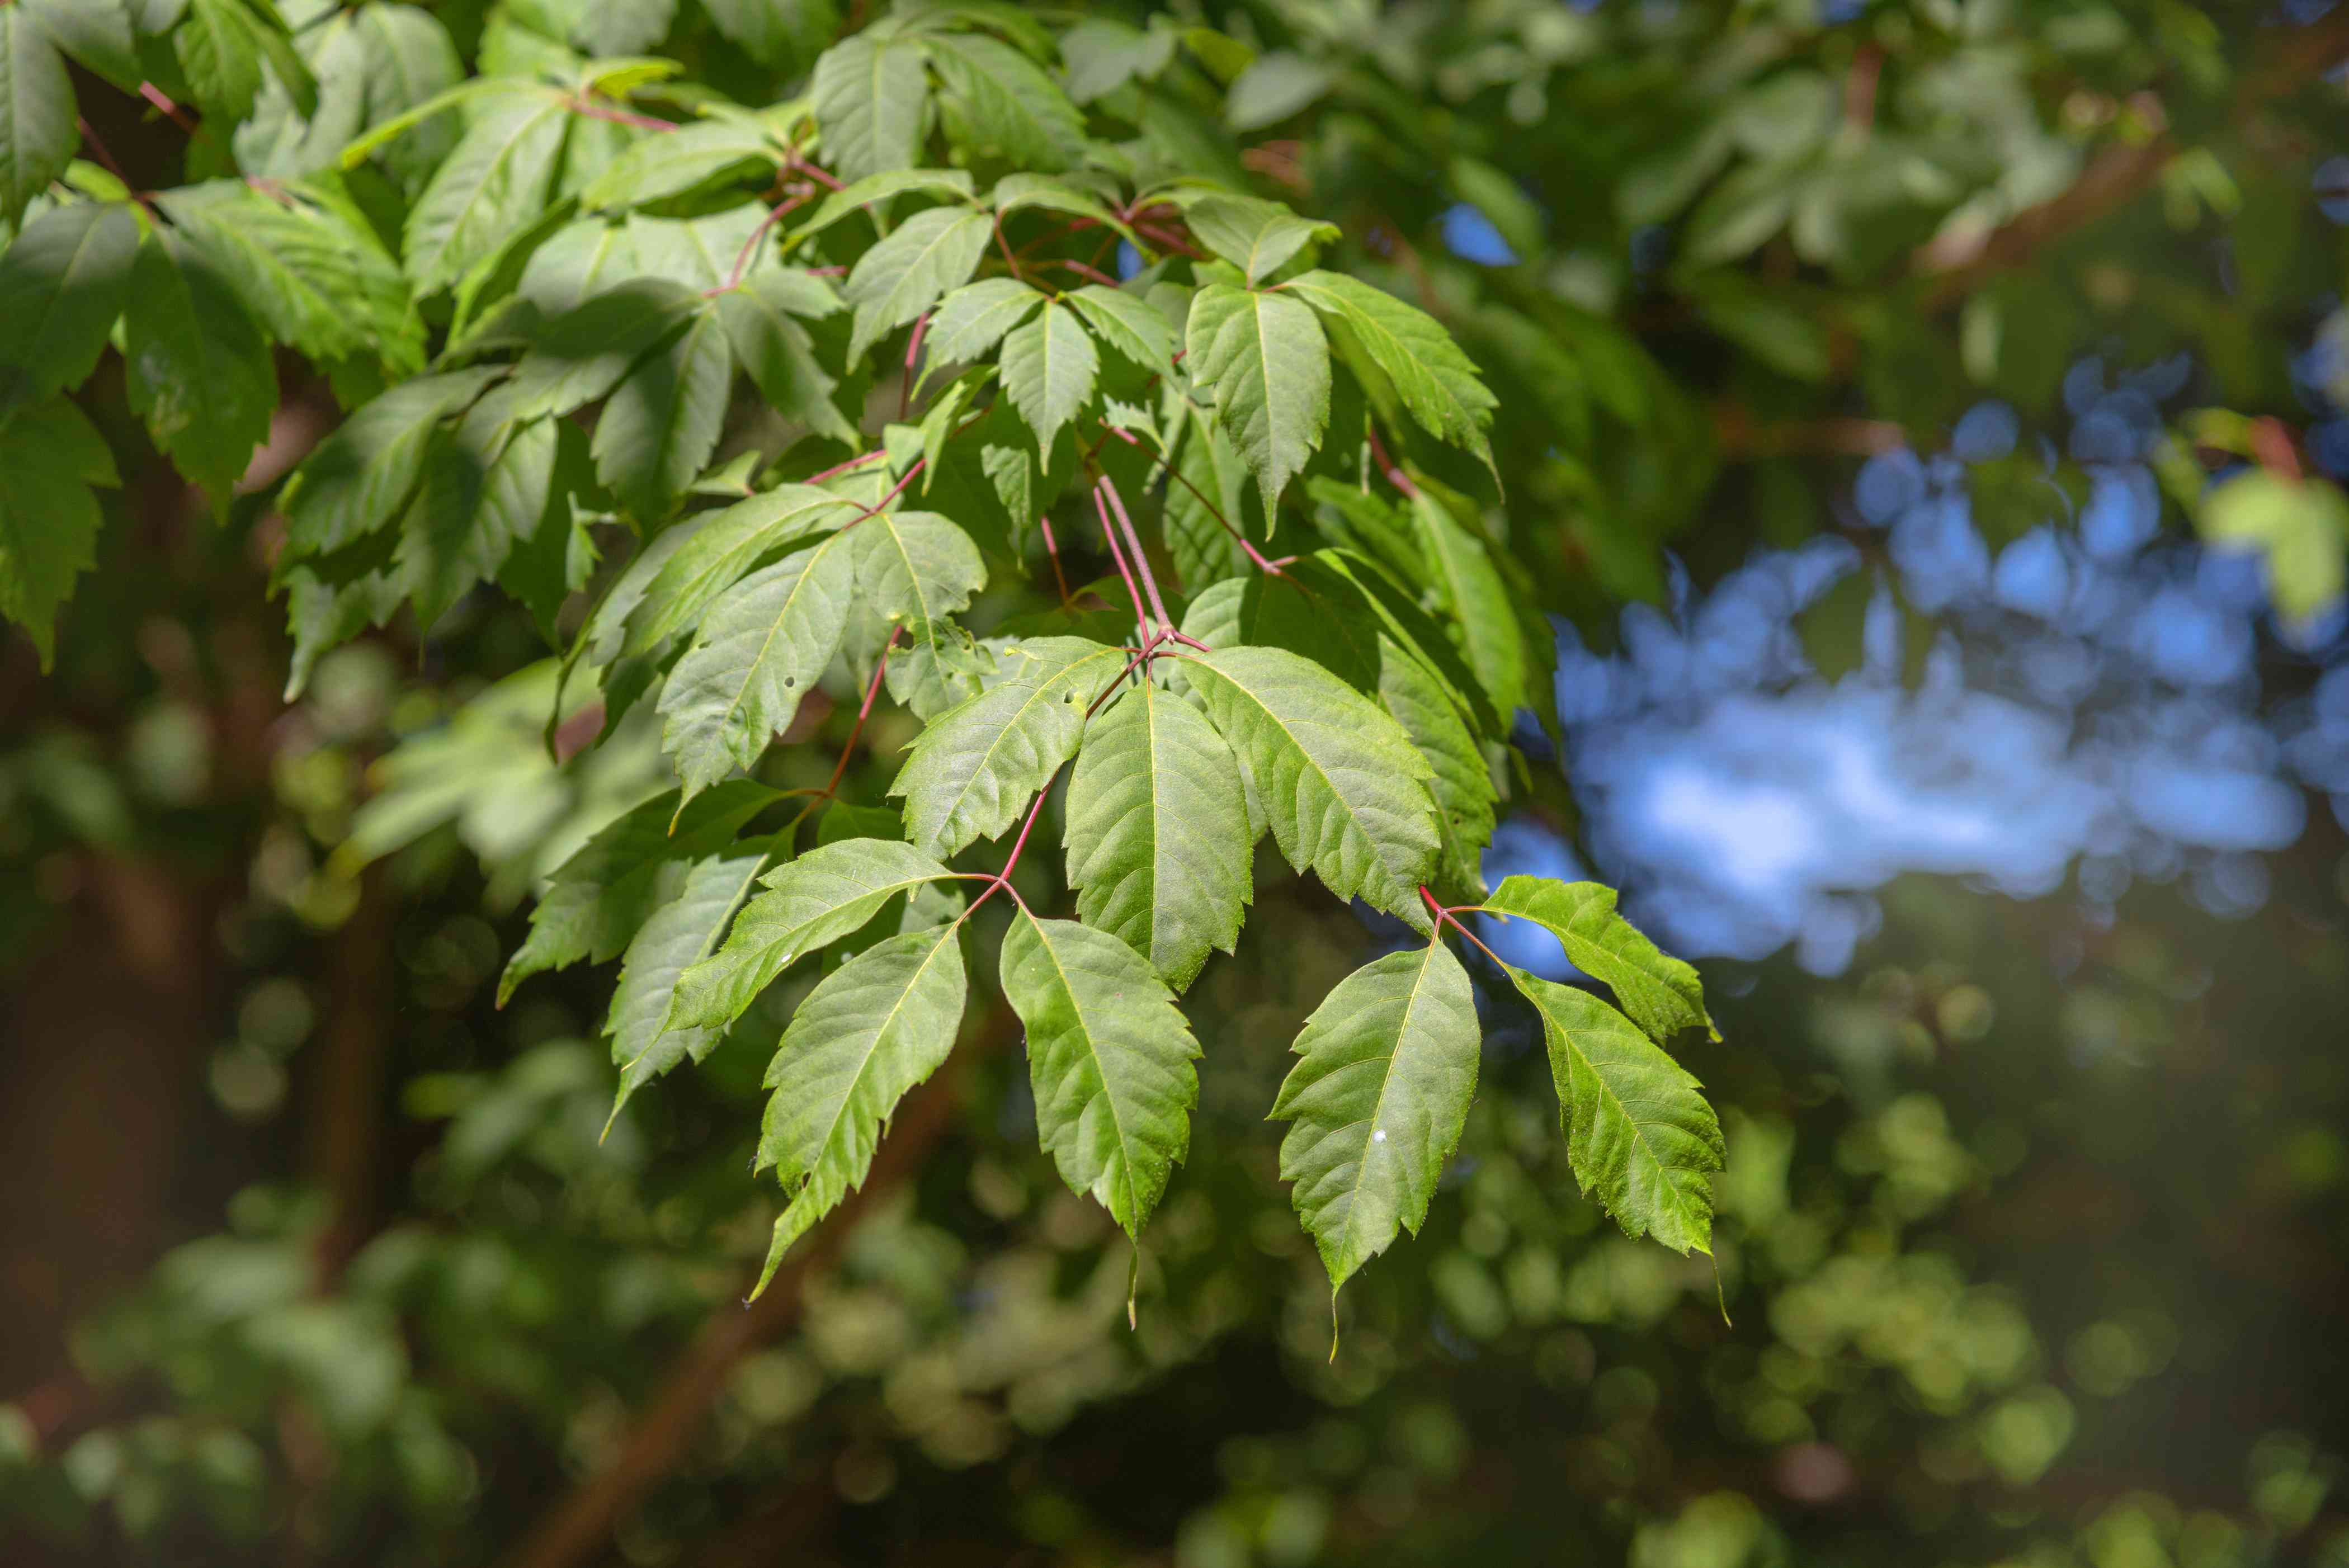 Vine leaf maple tree branch with trifoliate leaves on red stems